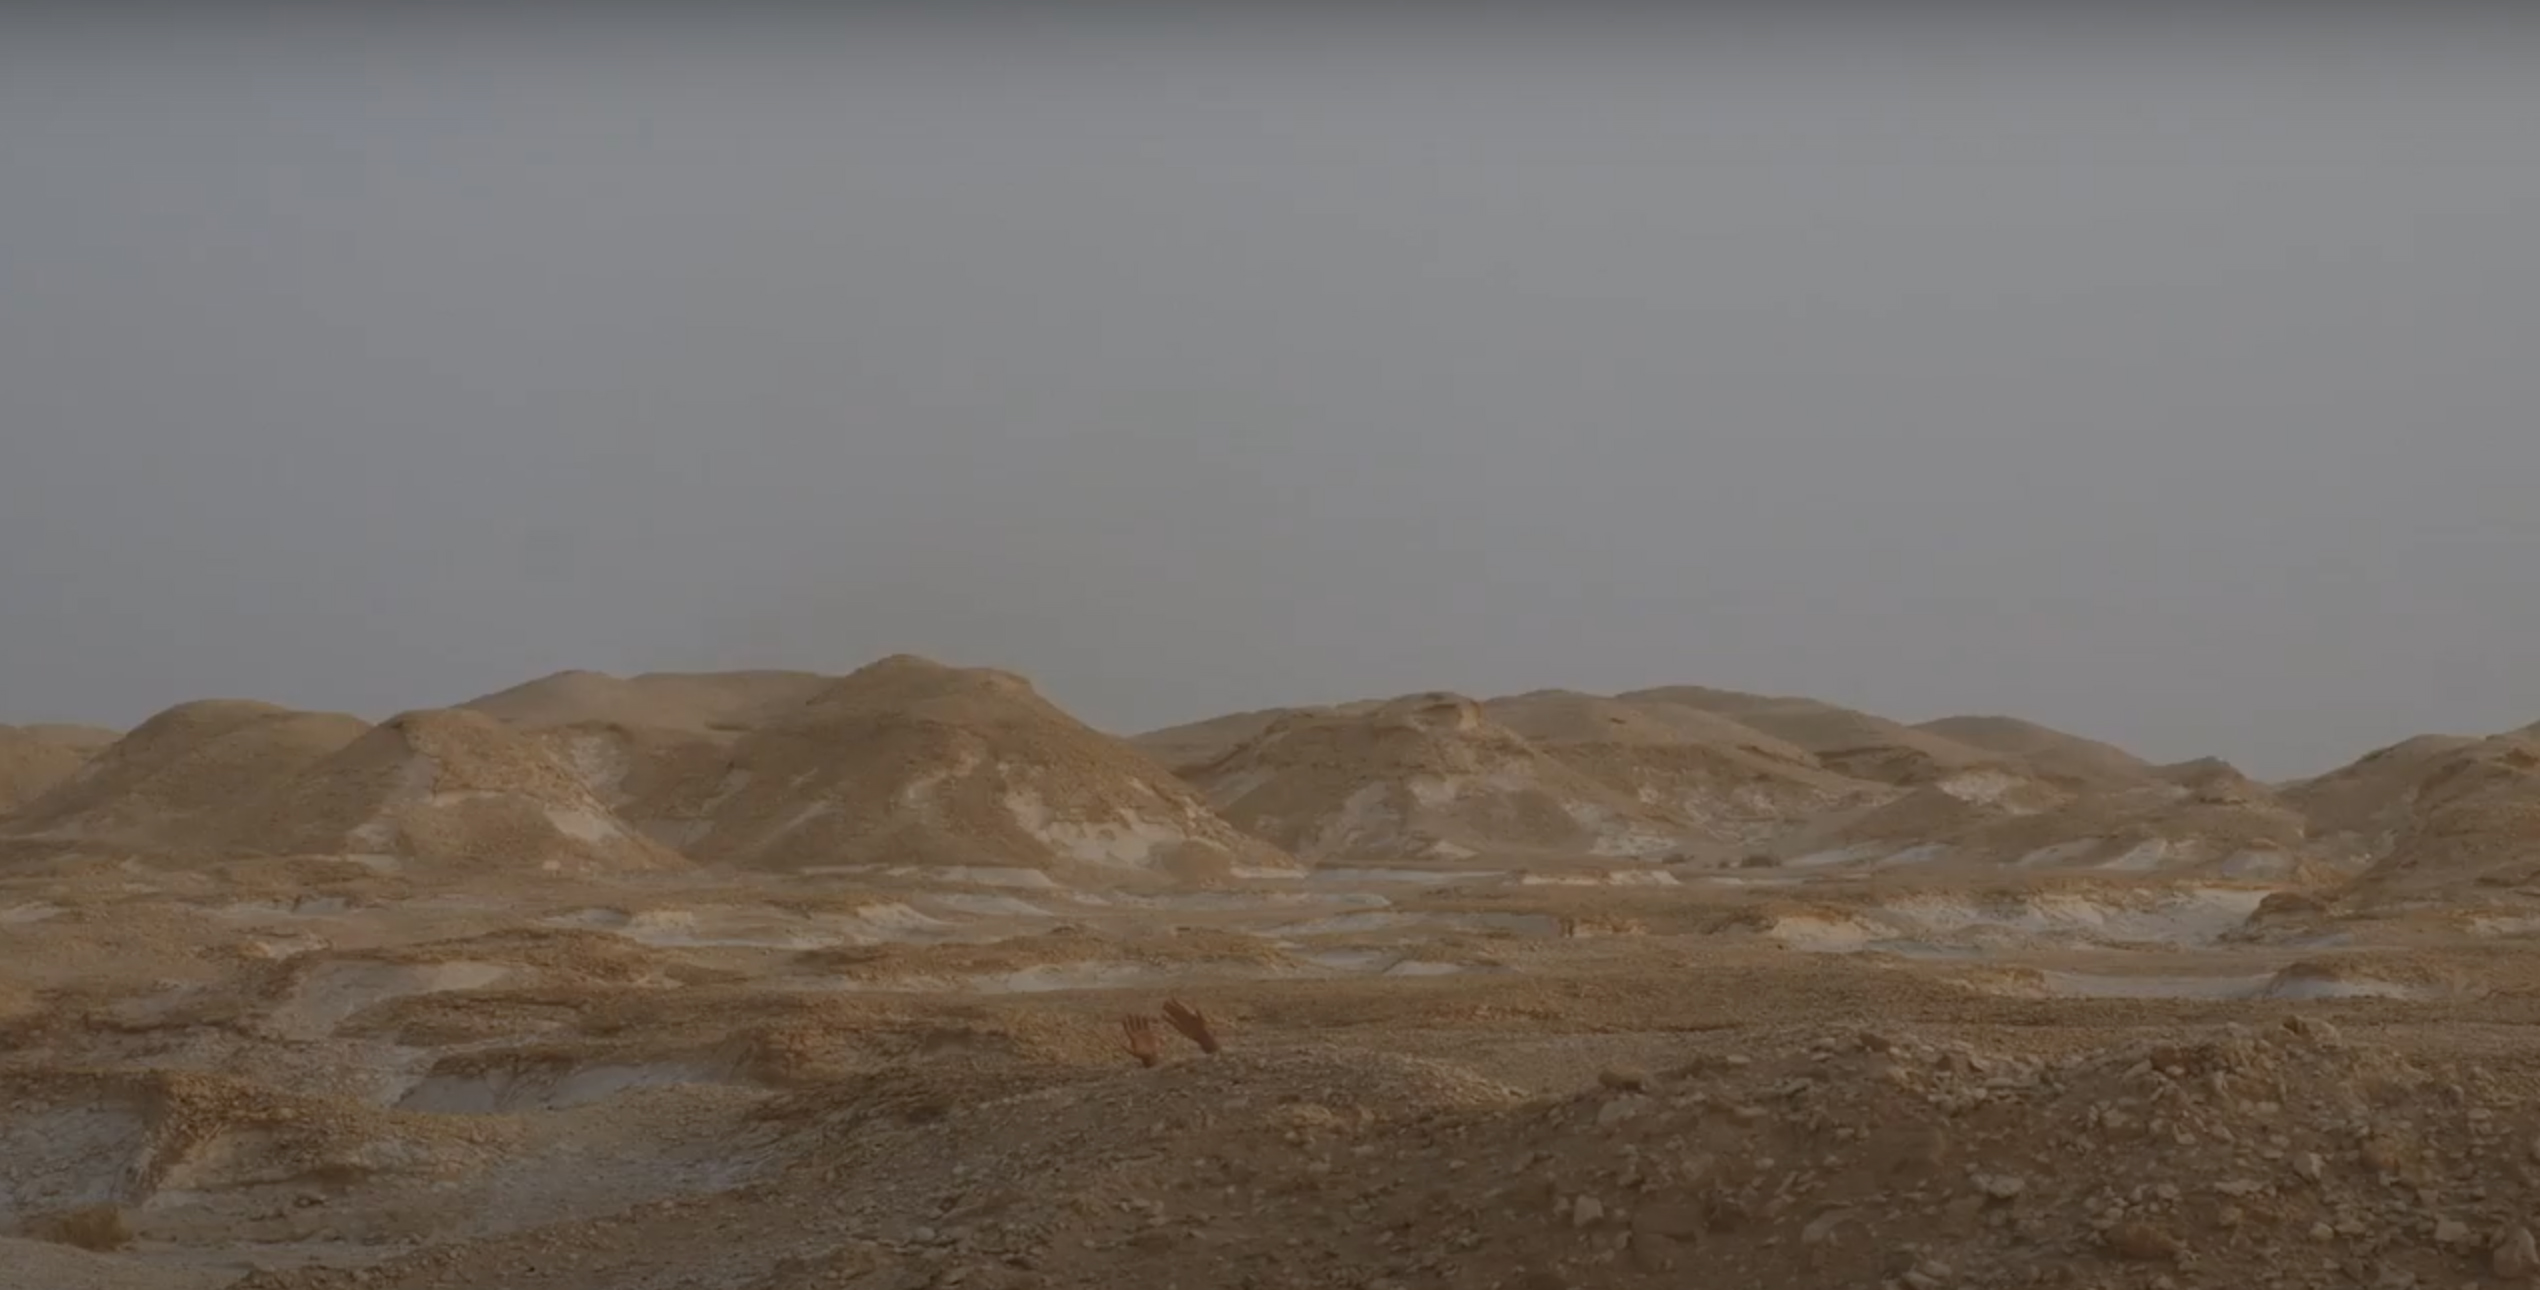 video still of a desert like landscape with two hands raised behind a small hill